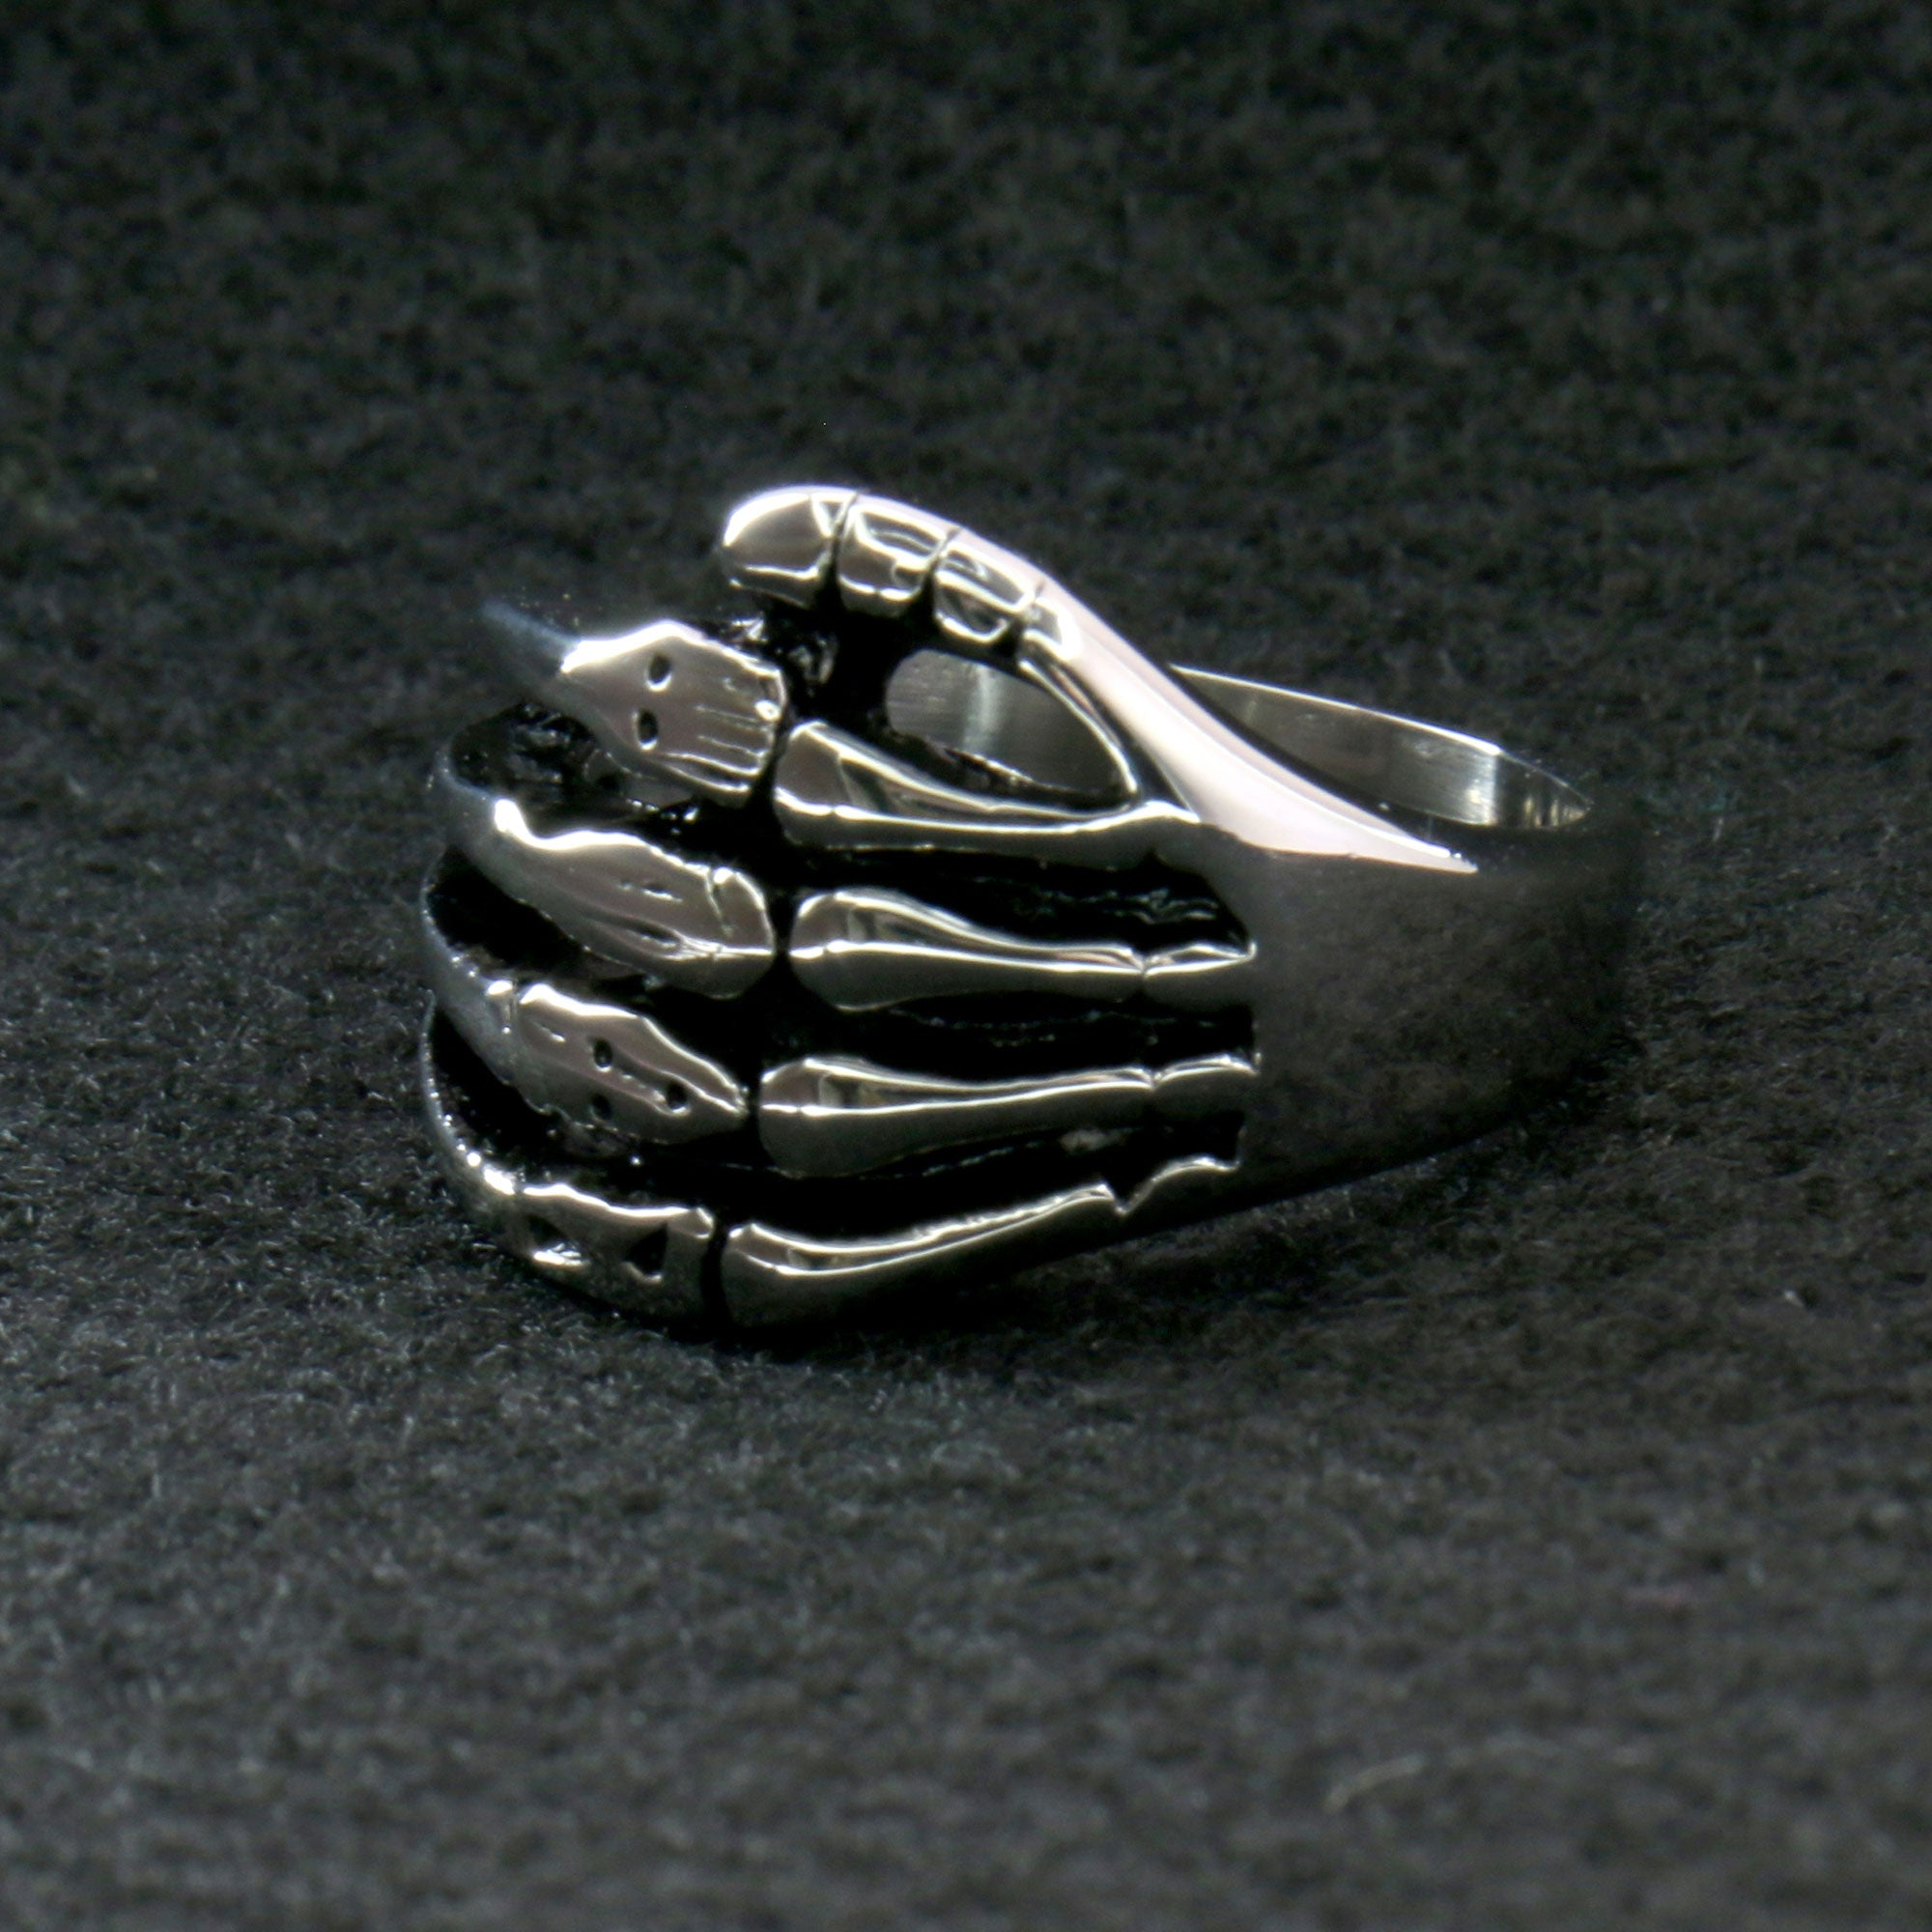 Hot Leathers Skeleton Hand Ring